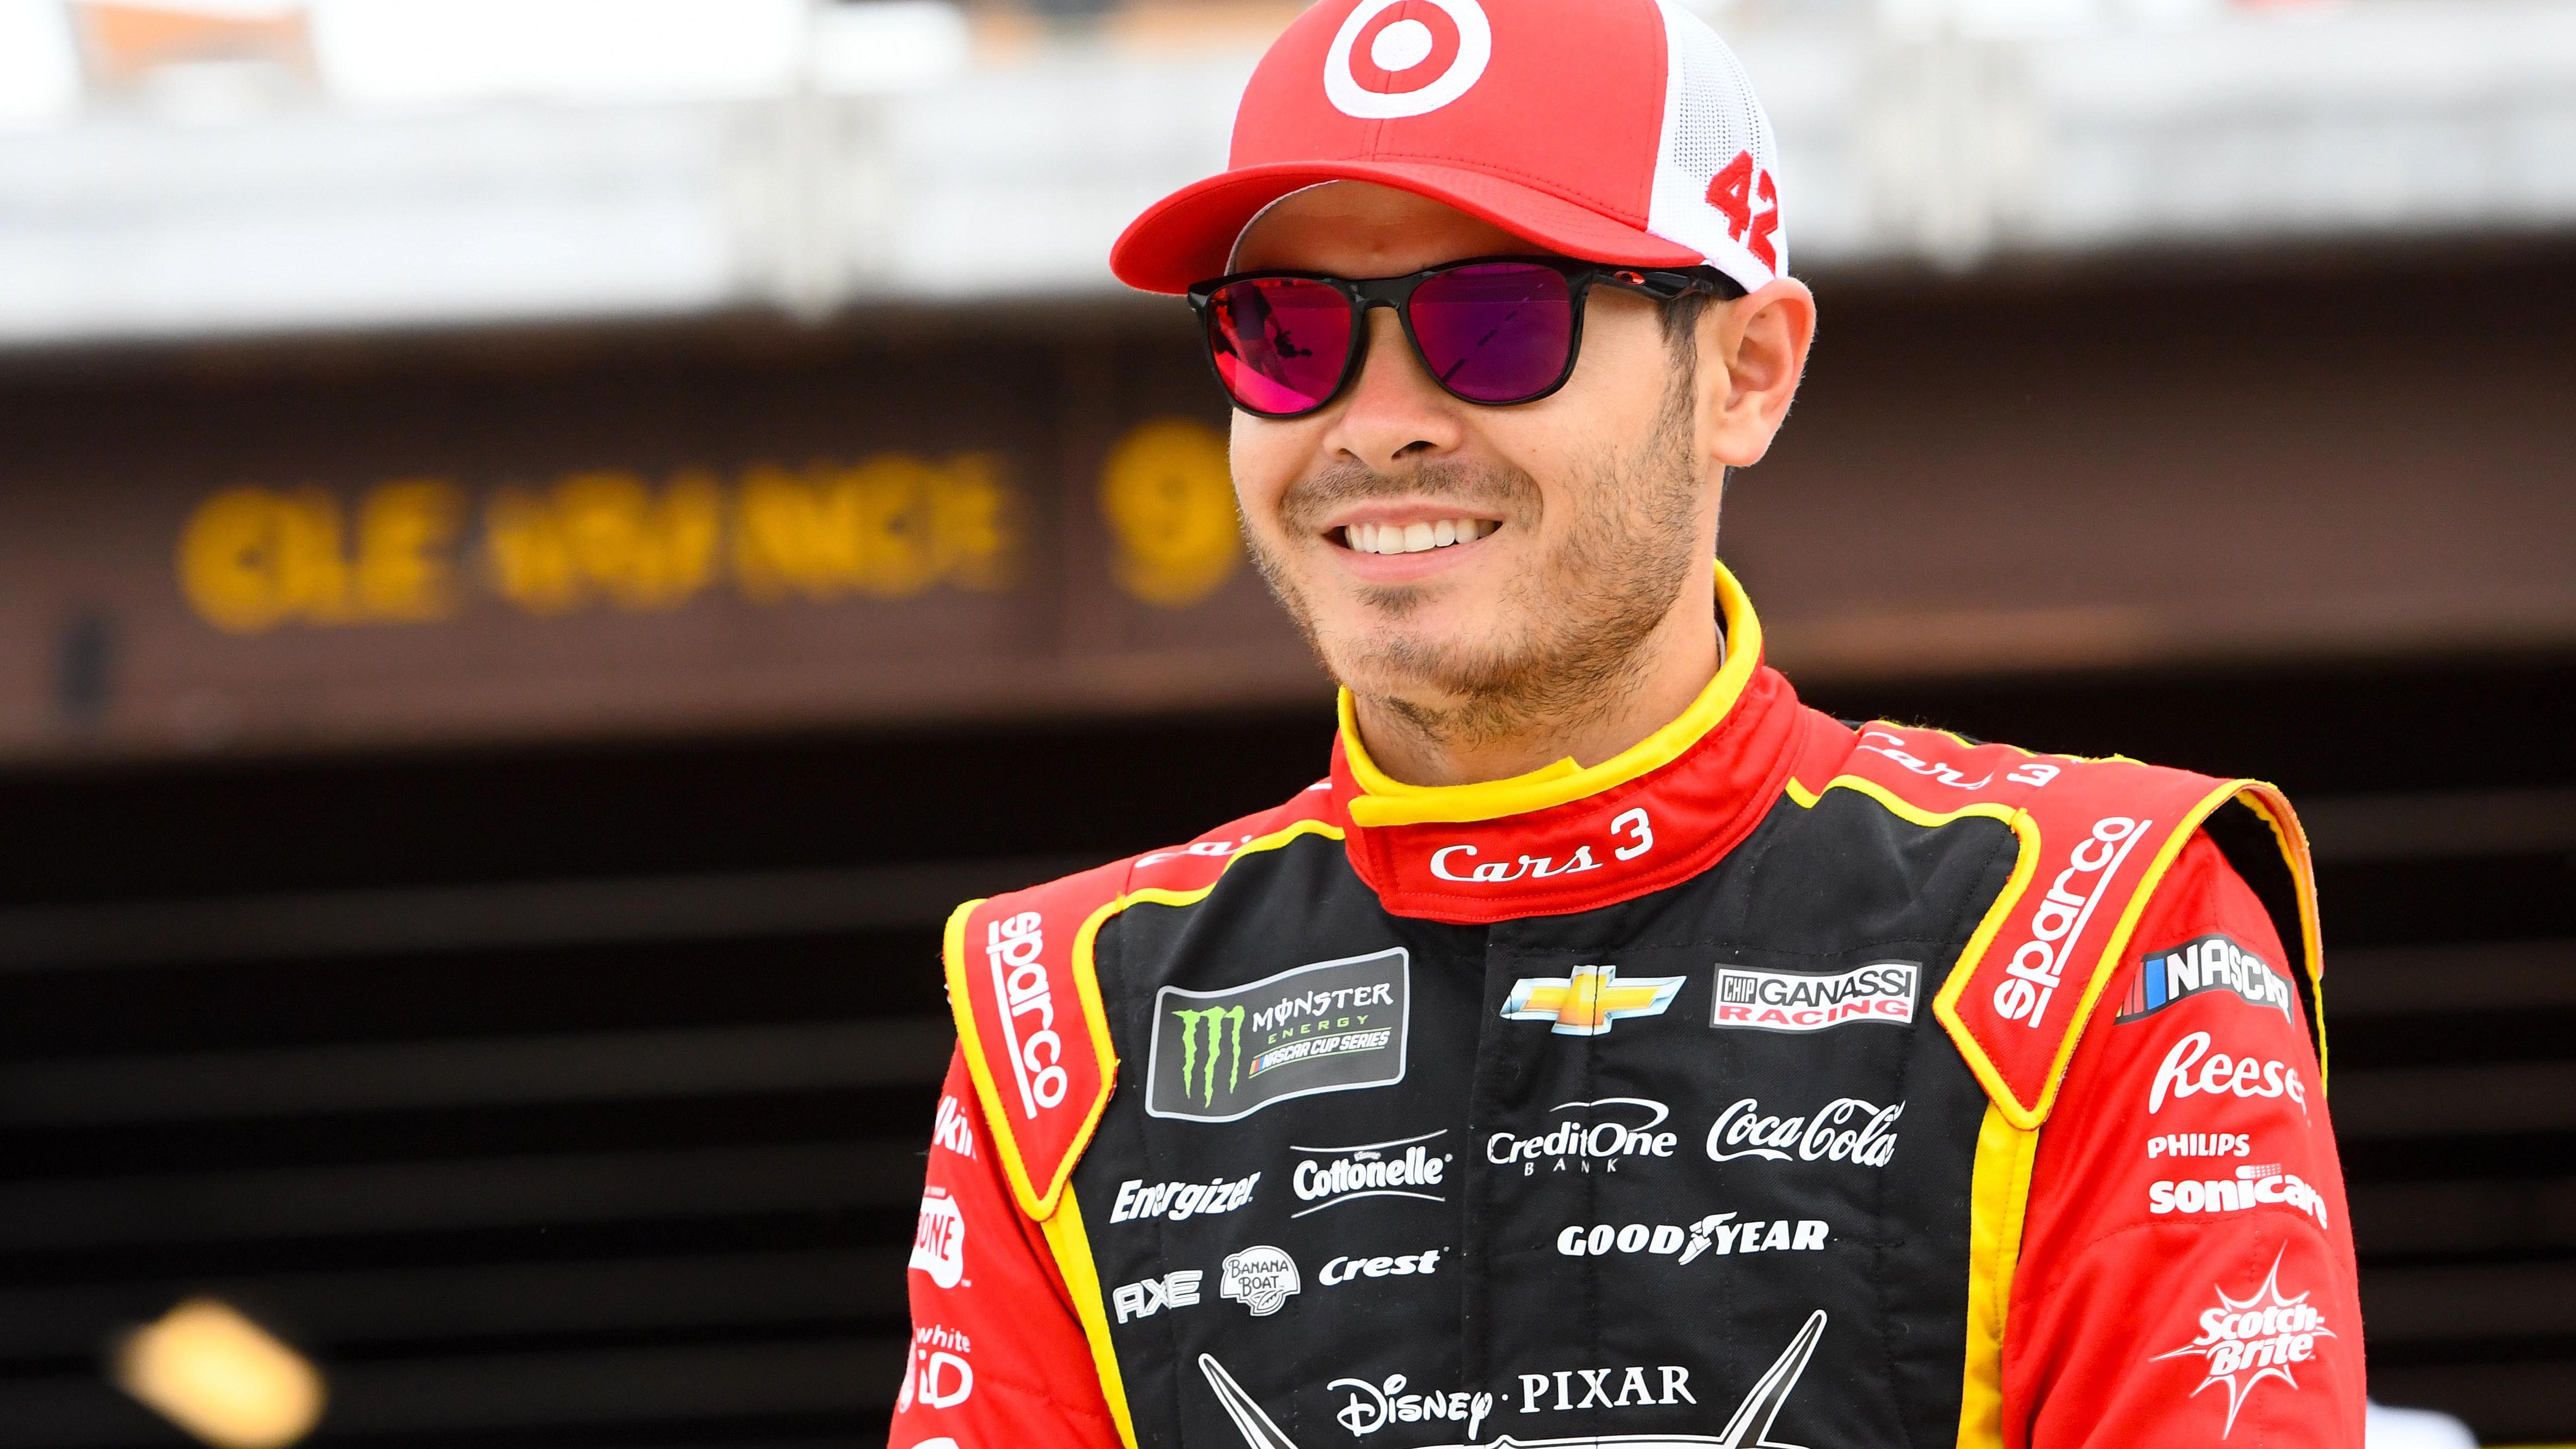 Jun 16, 2017; Brooklyn, MI, USA; NASCAR Cup Series driver Kyle Larson (42) during qualifying for the FireKeepers Casino 400 at Michigan International Speedway. Mandatory Credit: Mike DiNovo-USA TODAY Sports